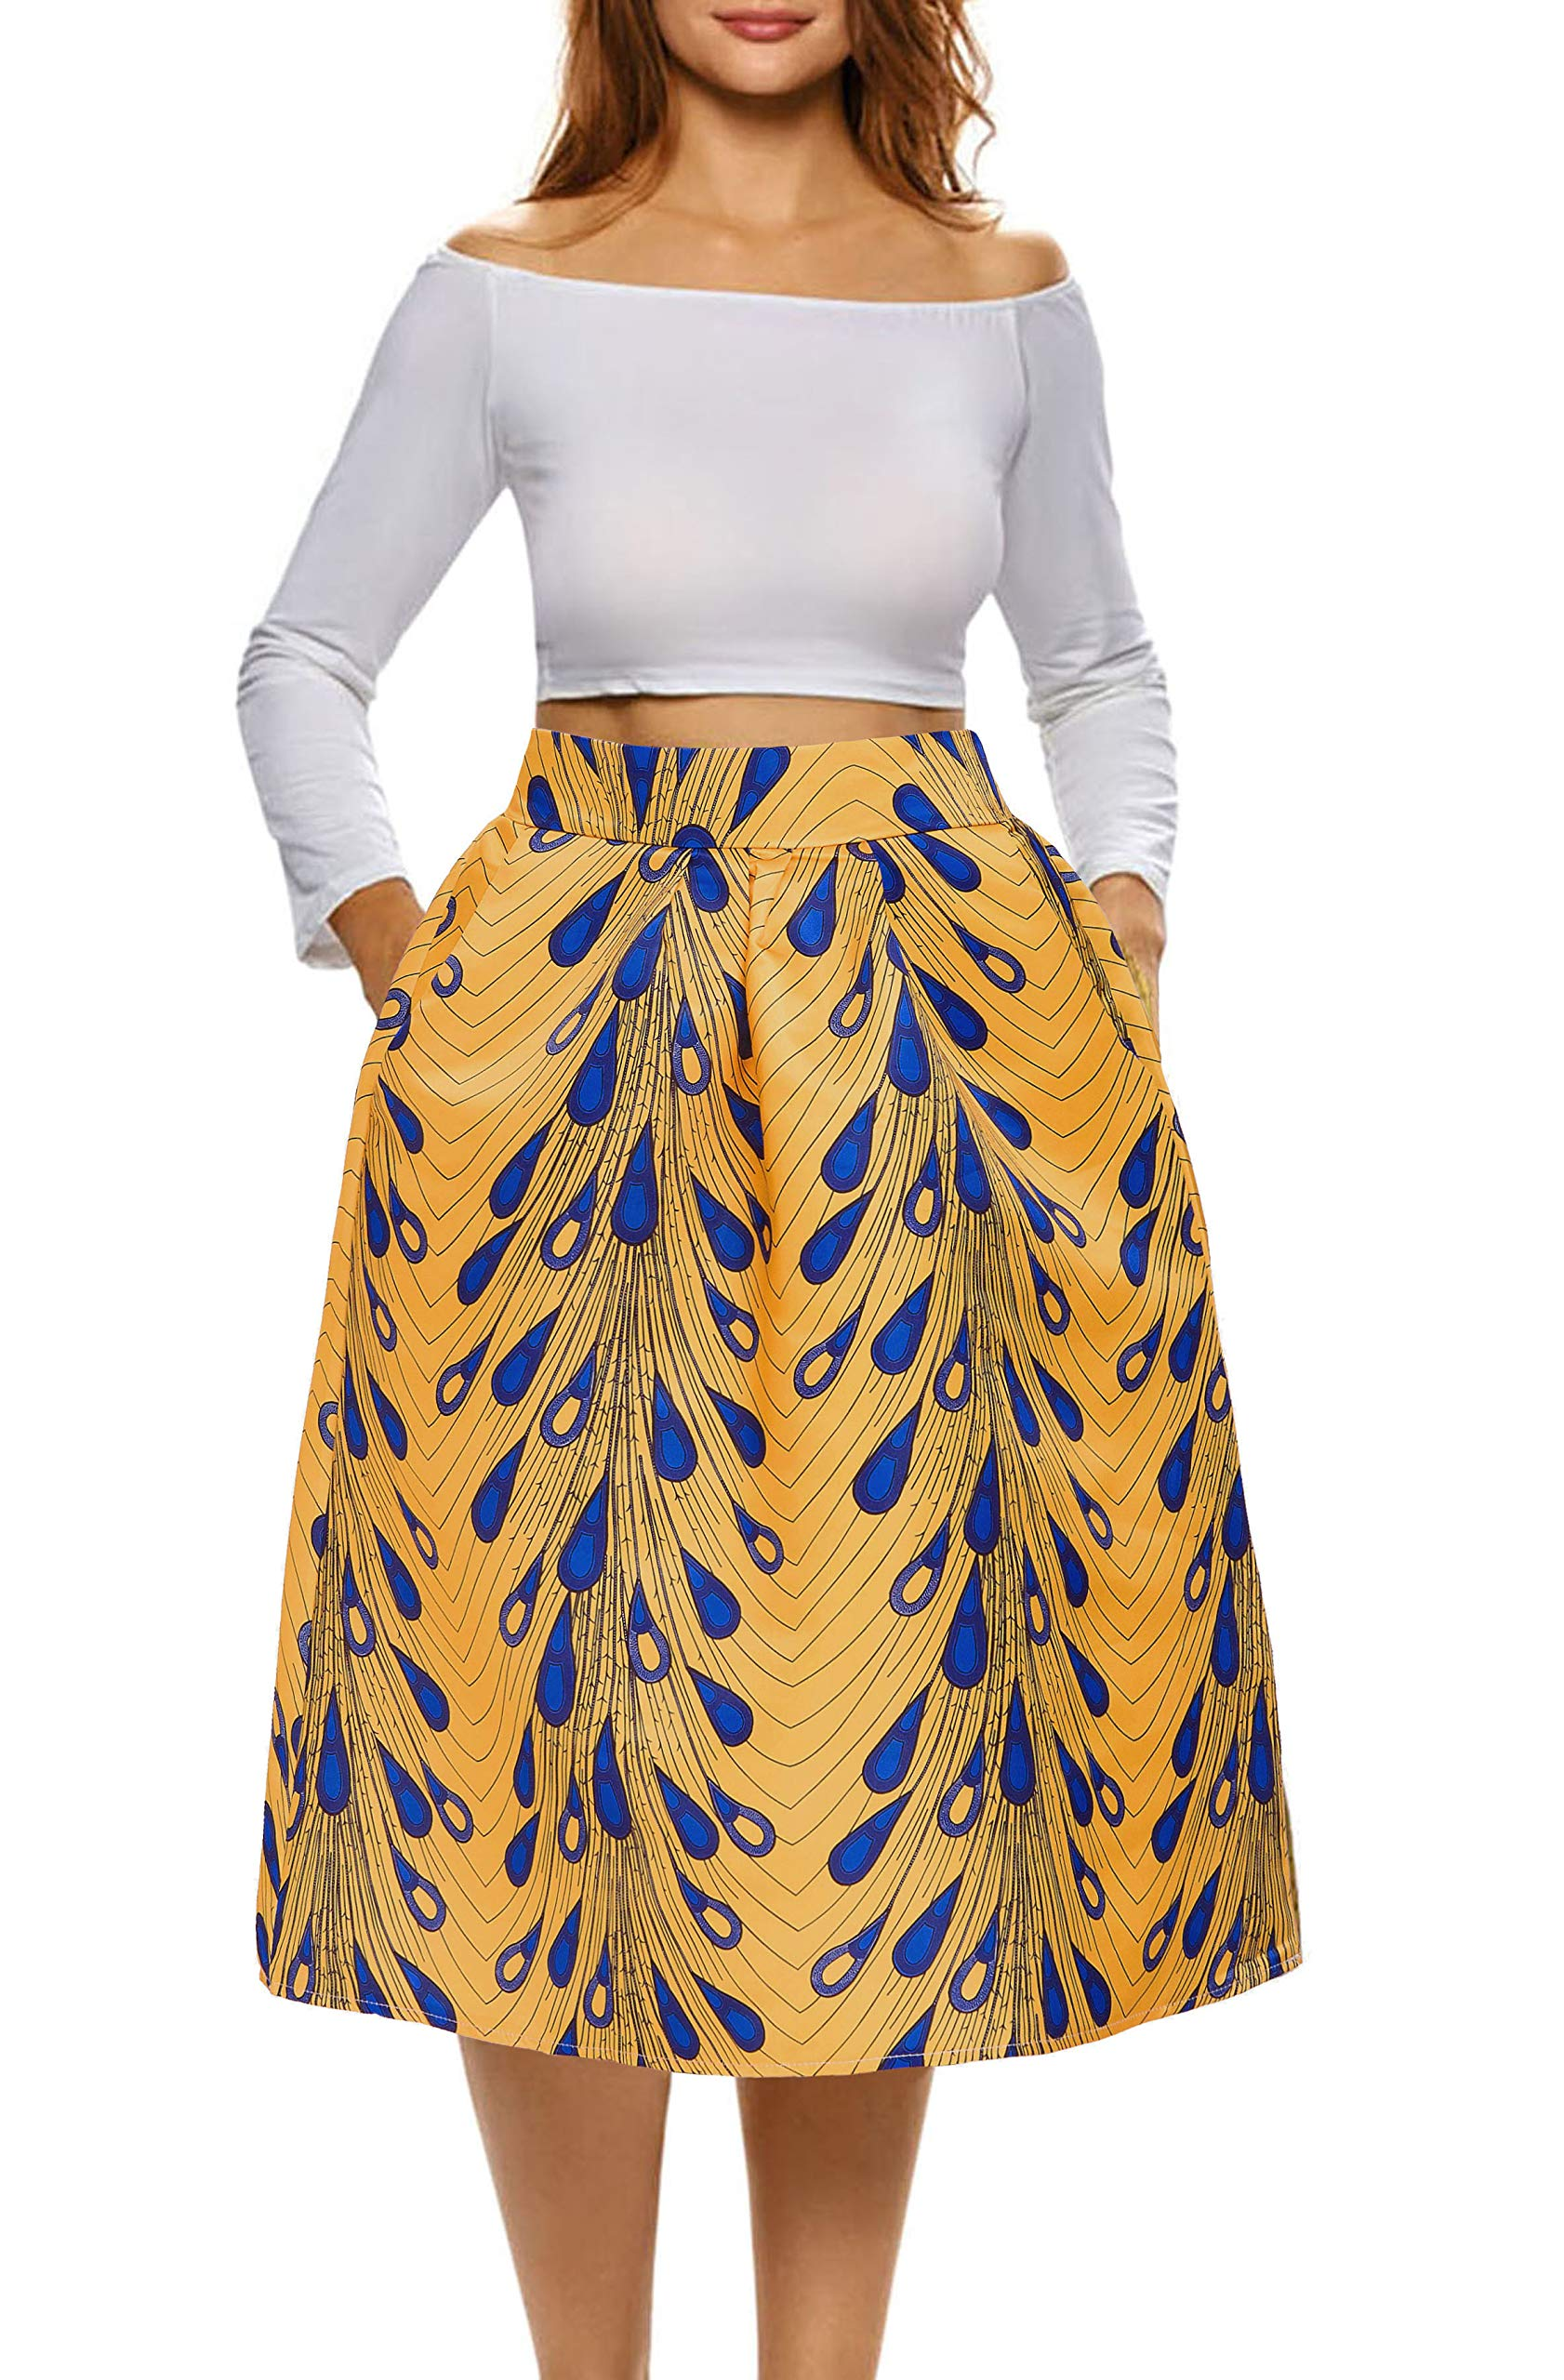 Afibi African Print Skirts for Women Boho Plus Size Flare Pleated Skirts (XX-Large, Pattern 9)